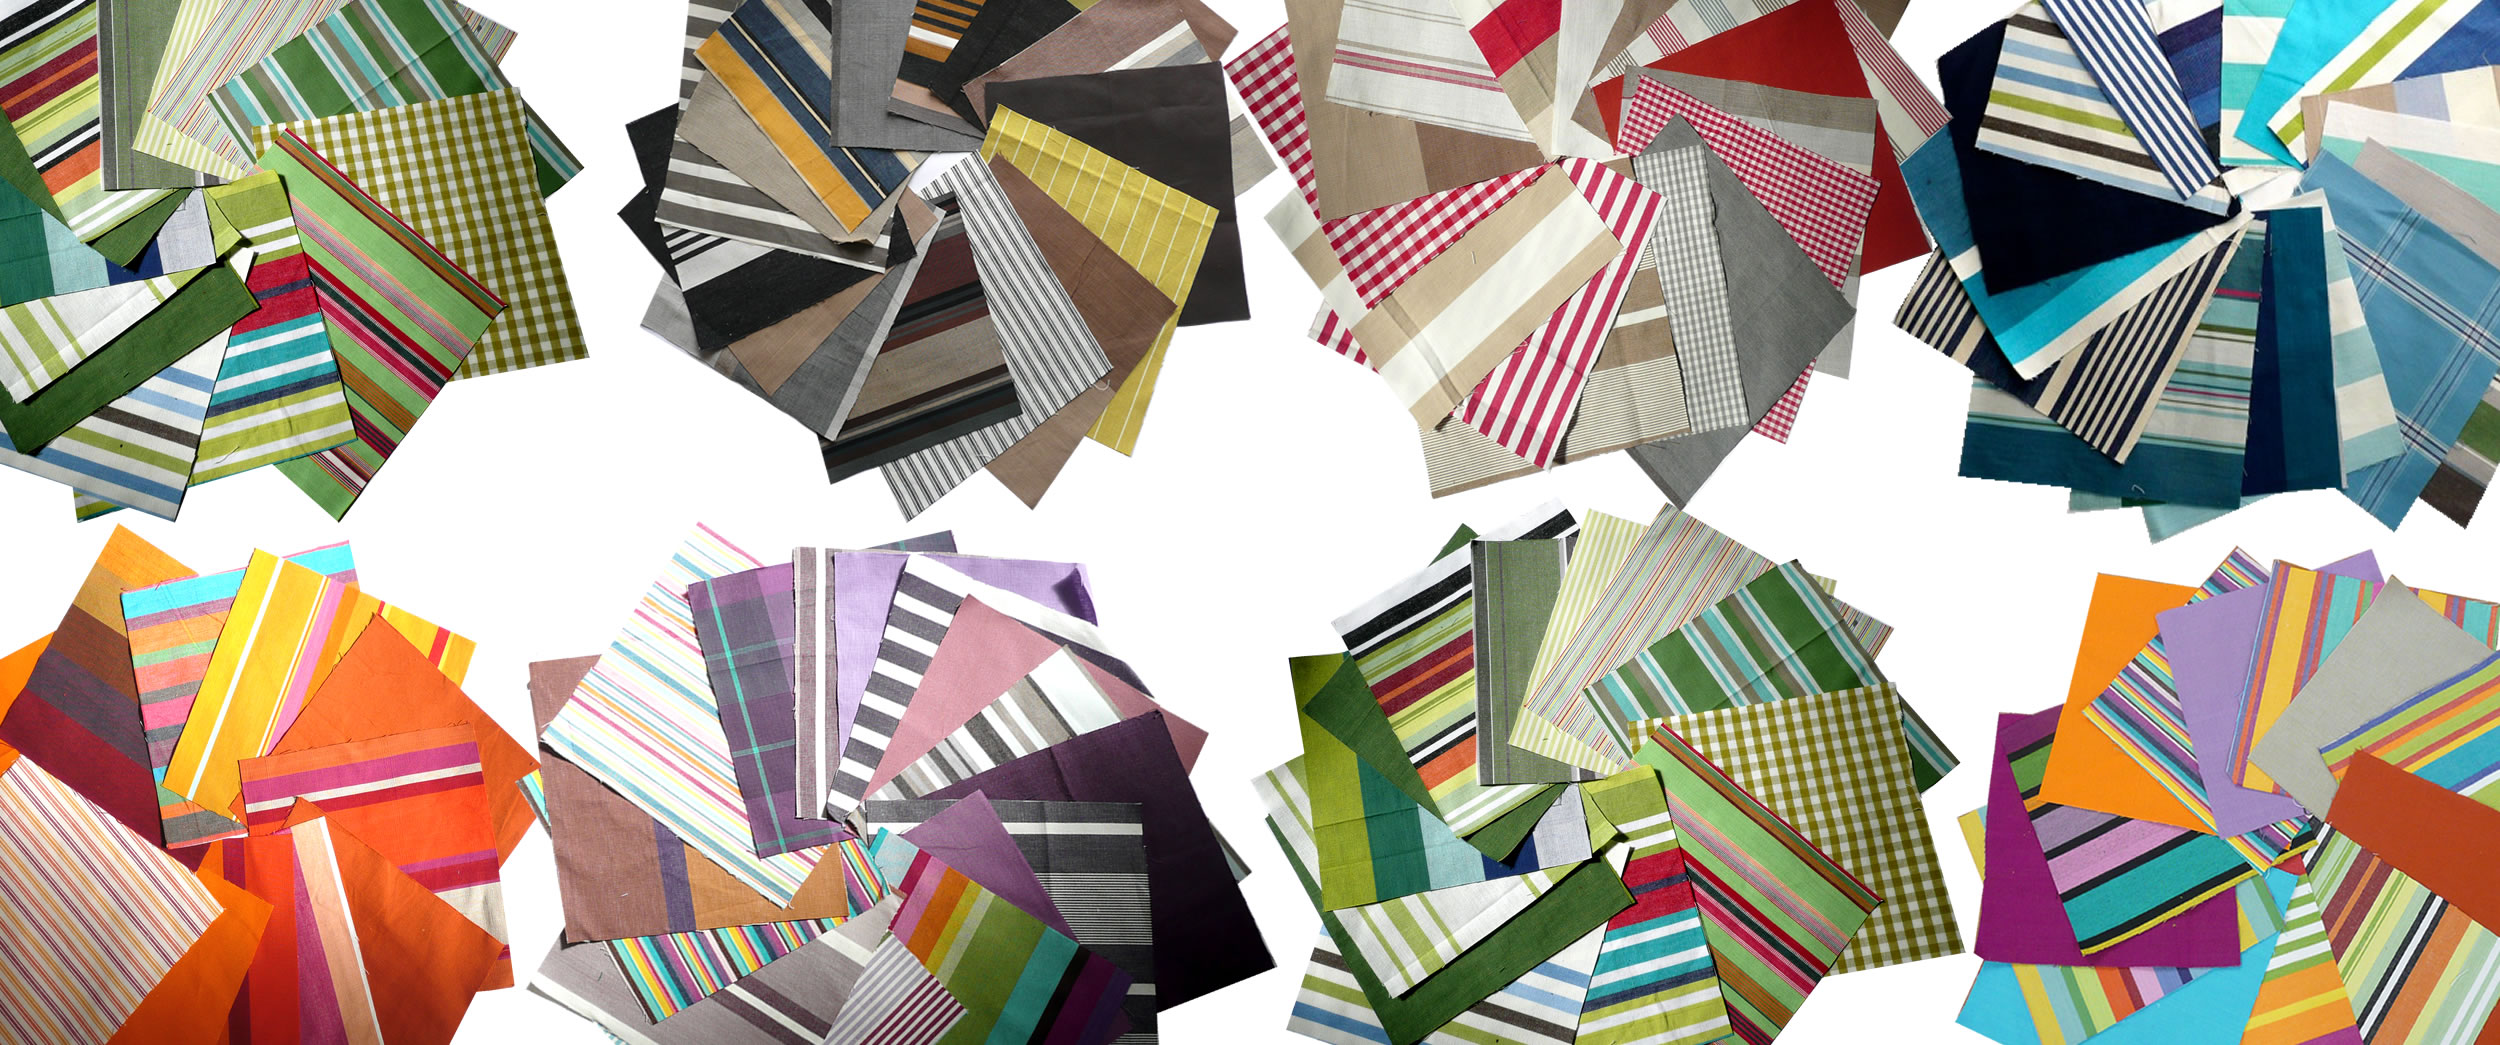 Striped Cotton Fabric Squares | Patchwork Fabric Squares | Quilting Fabric Squares